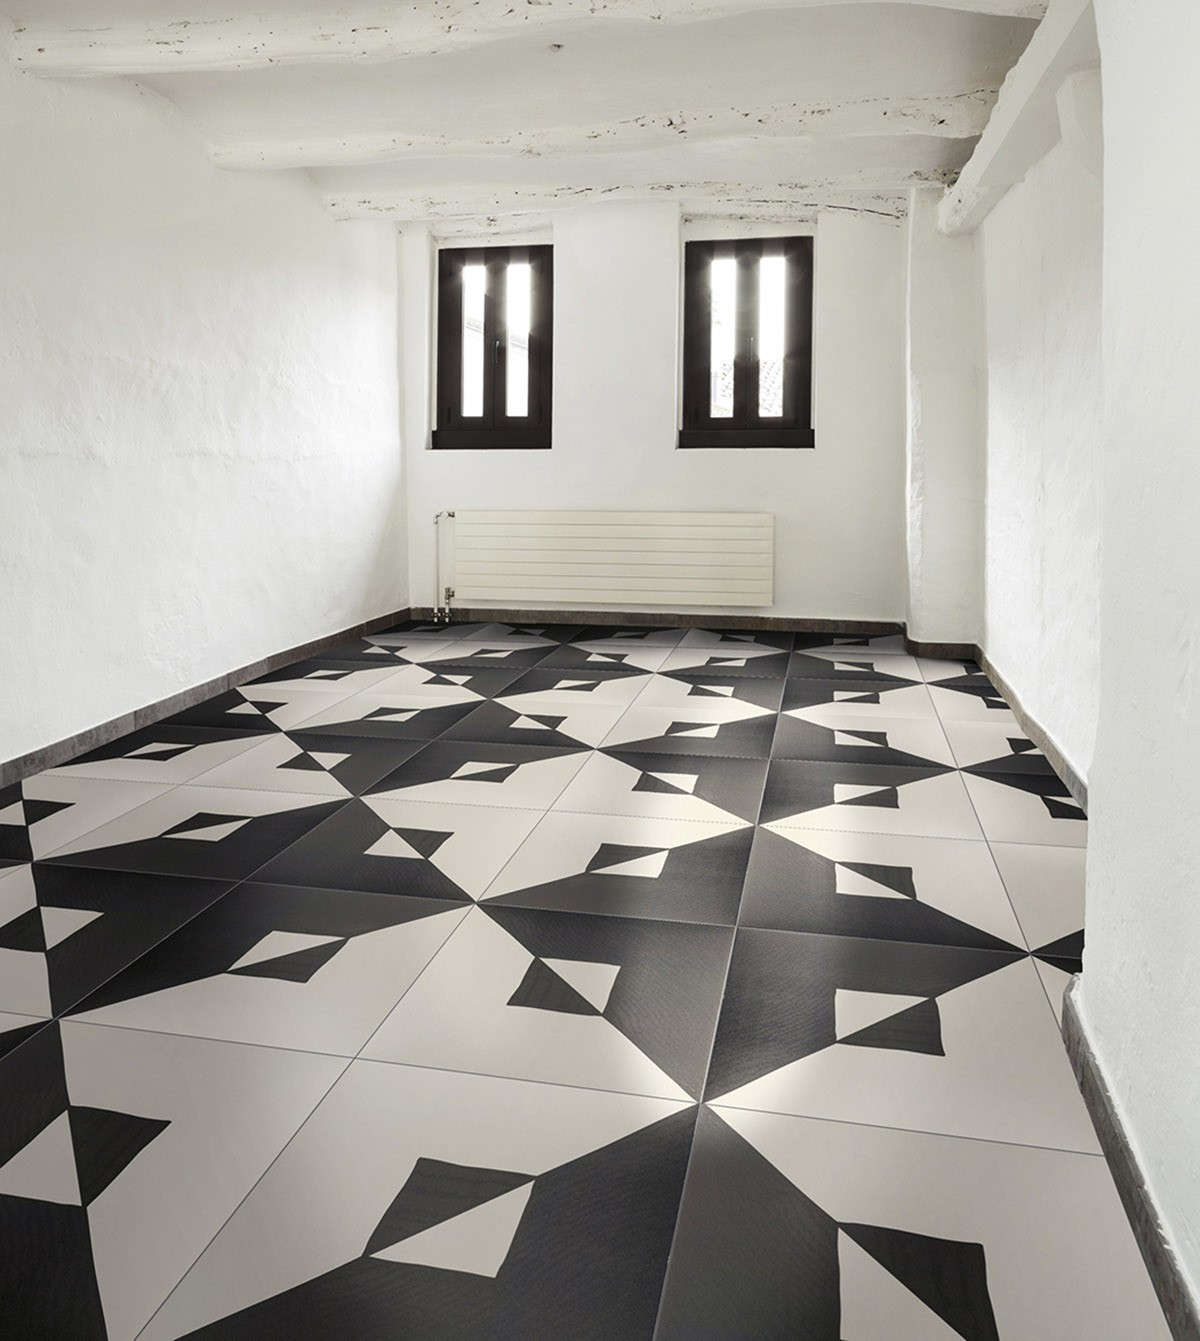 Carreau ciment noir et blanc stunning as de carreaux for Carrelage noir et blanc